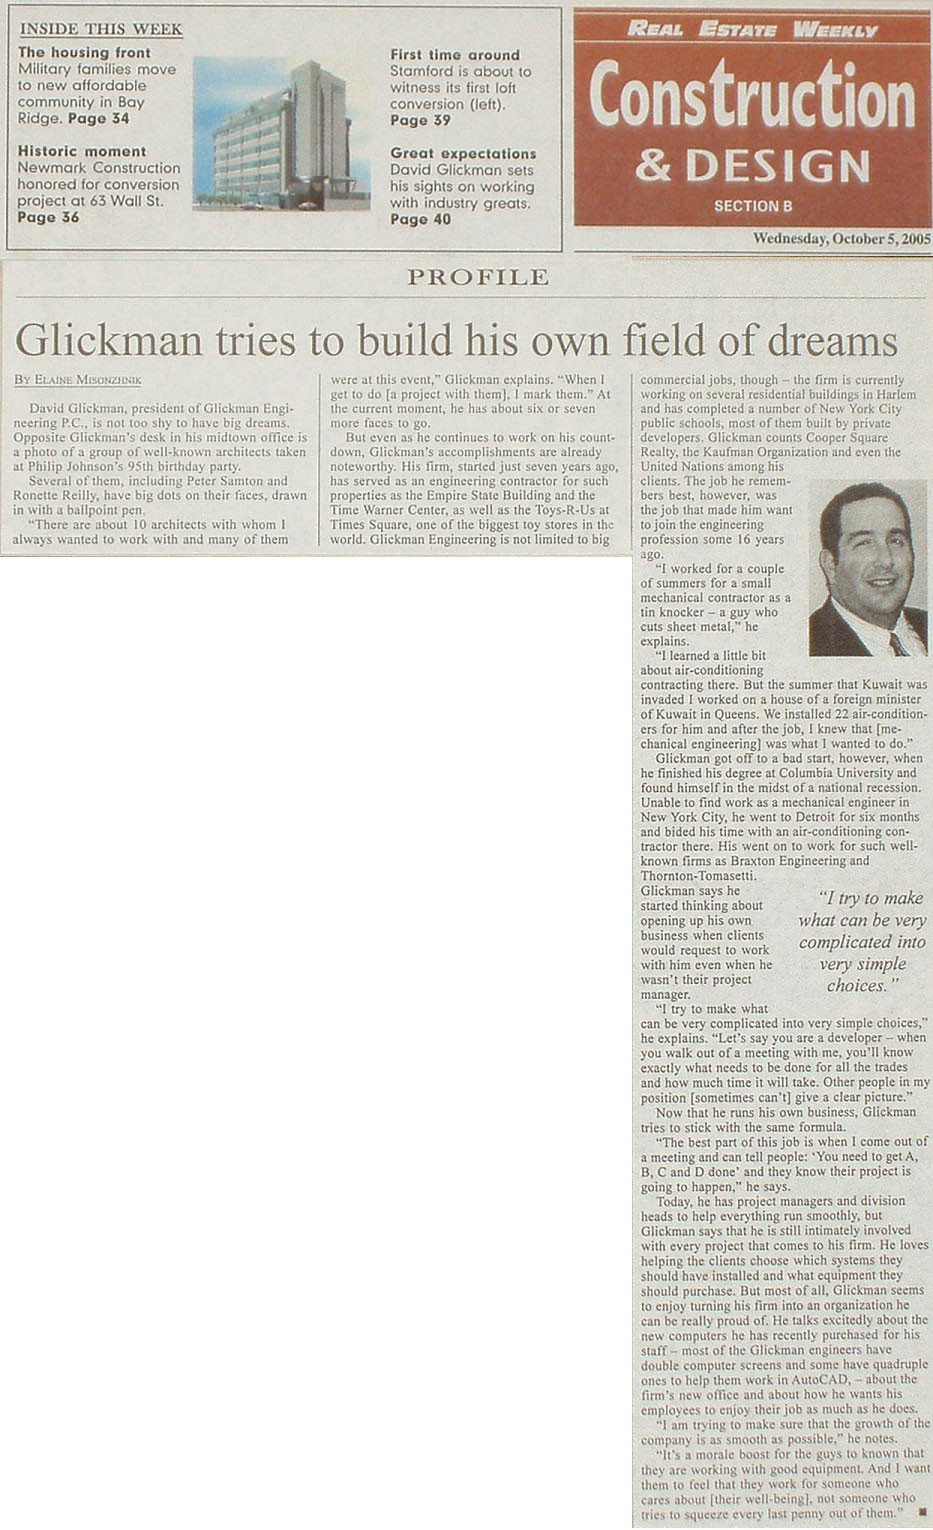 Glickman Tries to Build His Own Field of Dreams